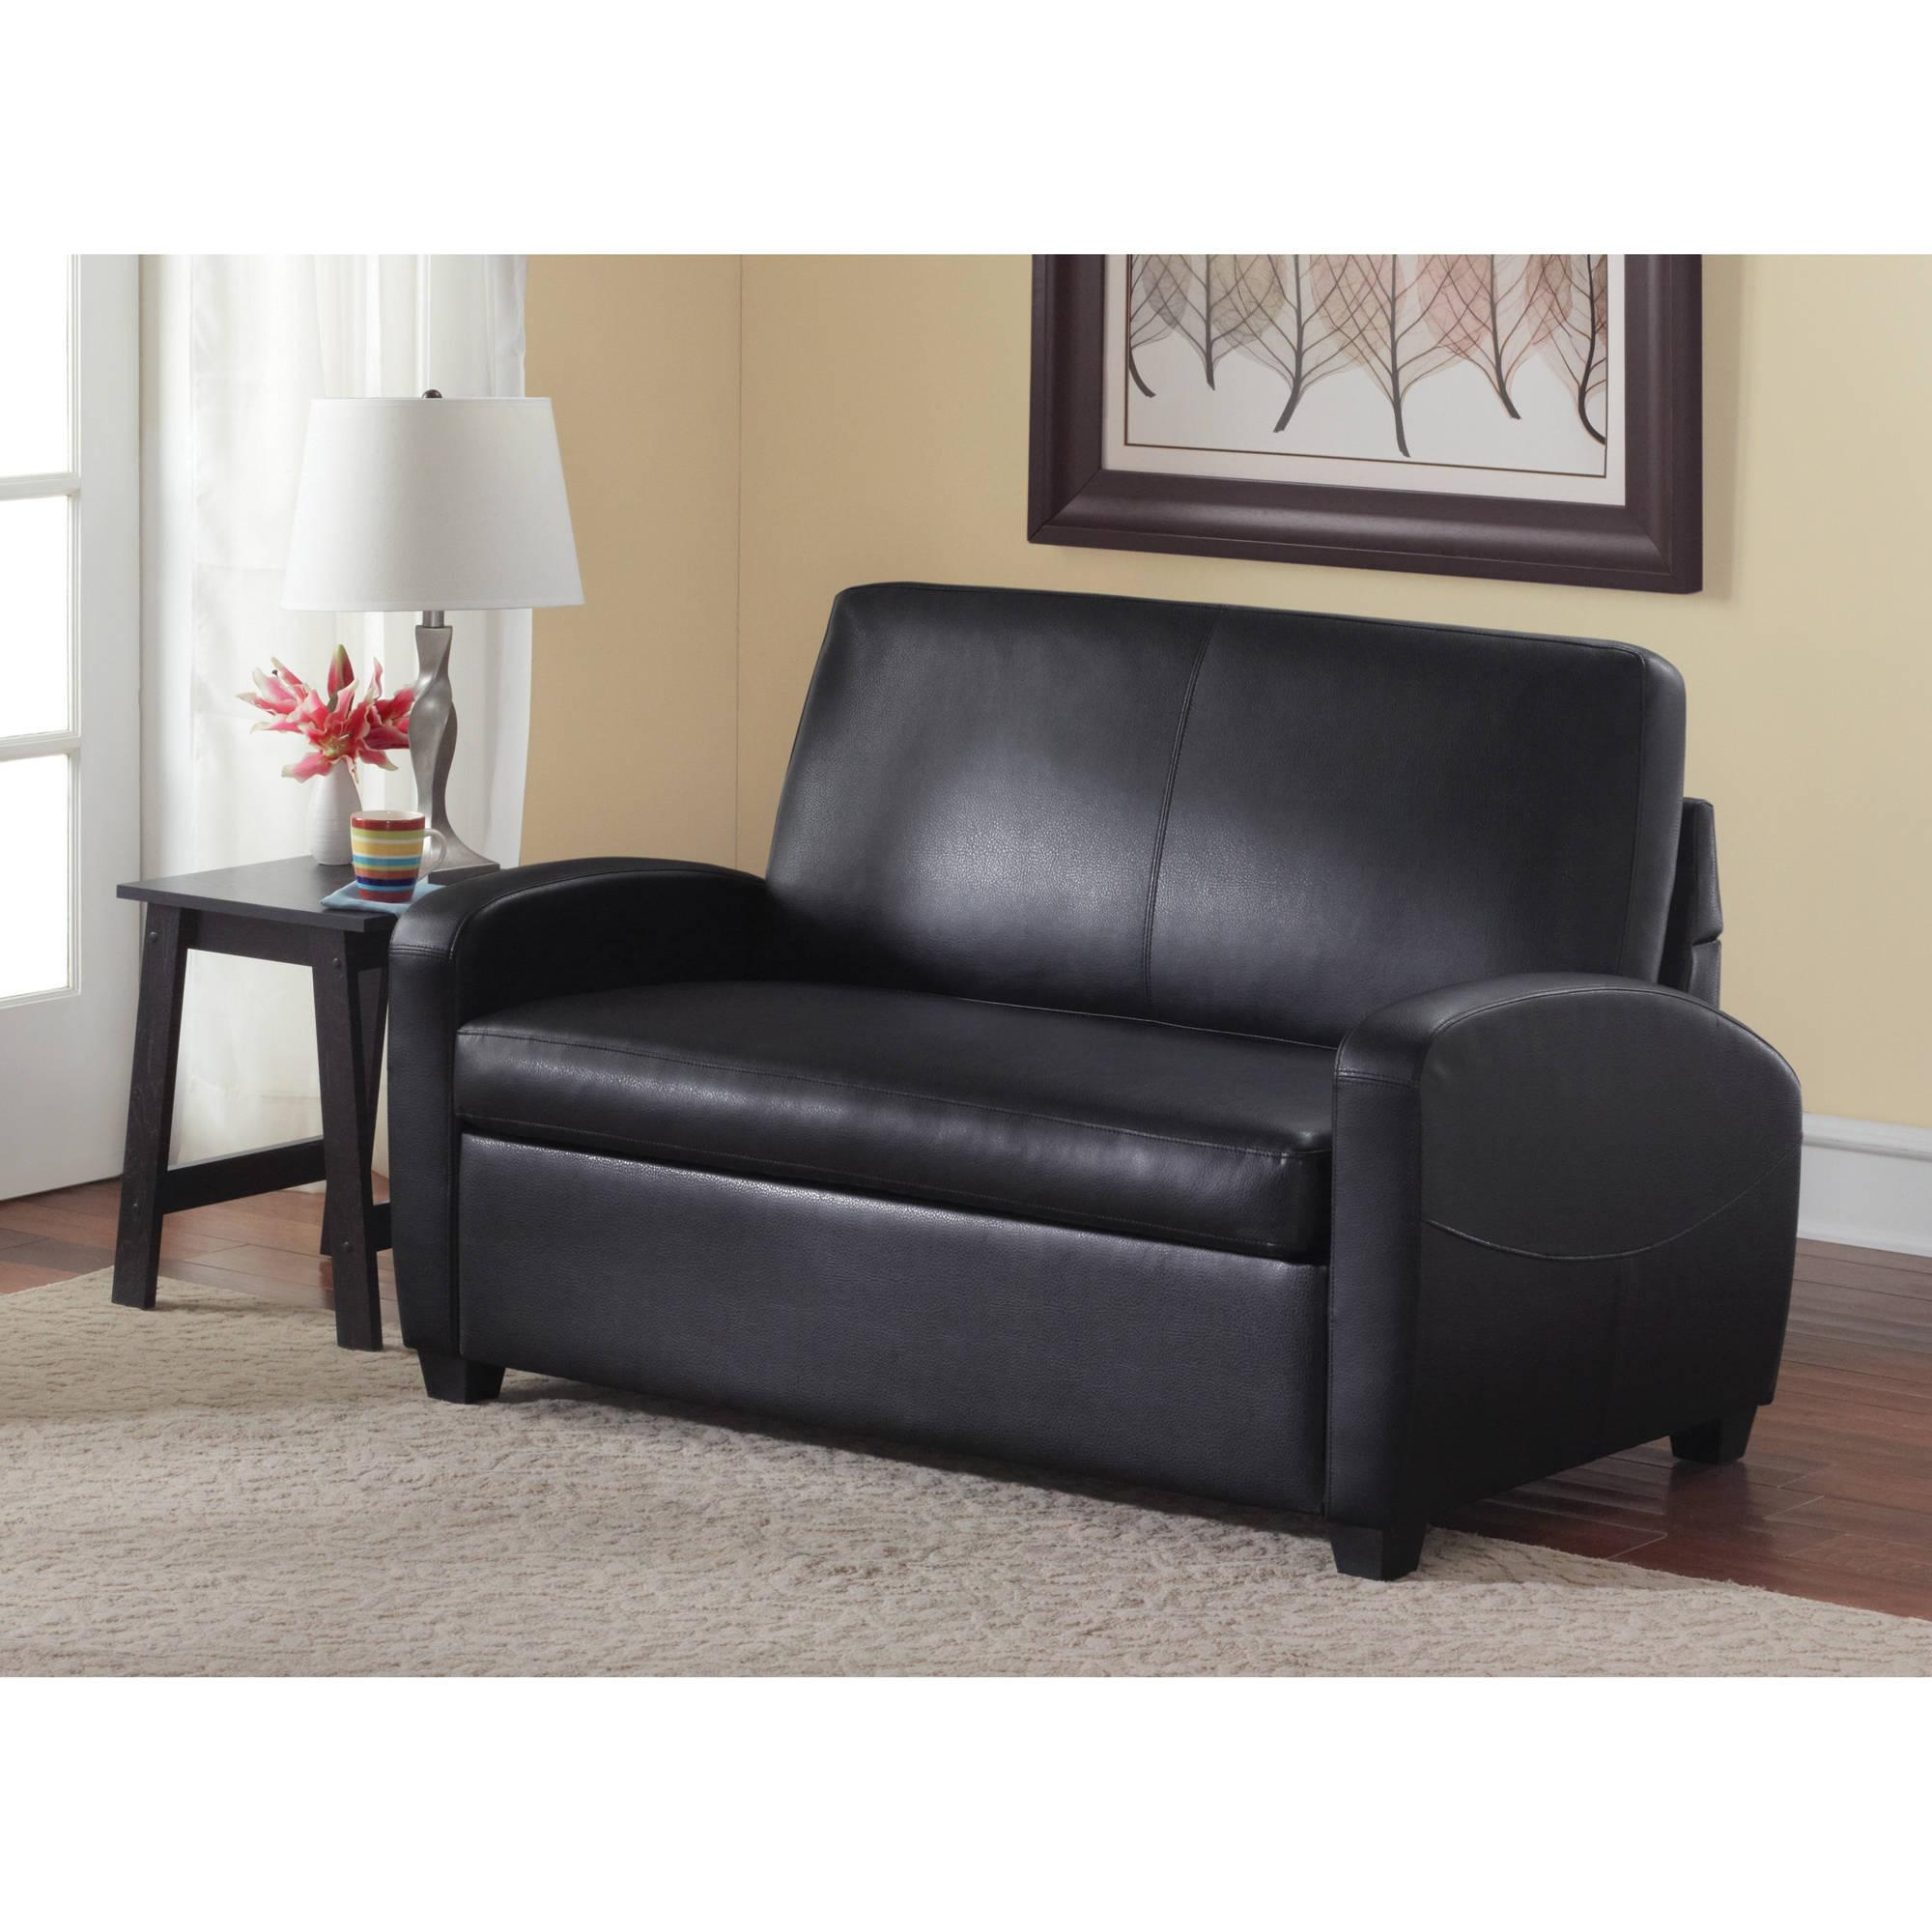 Mainstays Sofa Sleeper, Black – Walmart Intended For Faux Leather Sleeper Sofas (View 5 of 20)